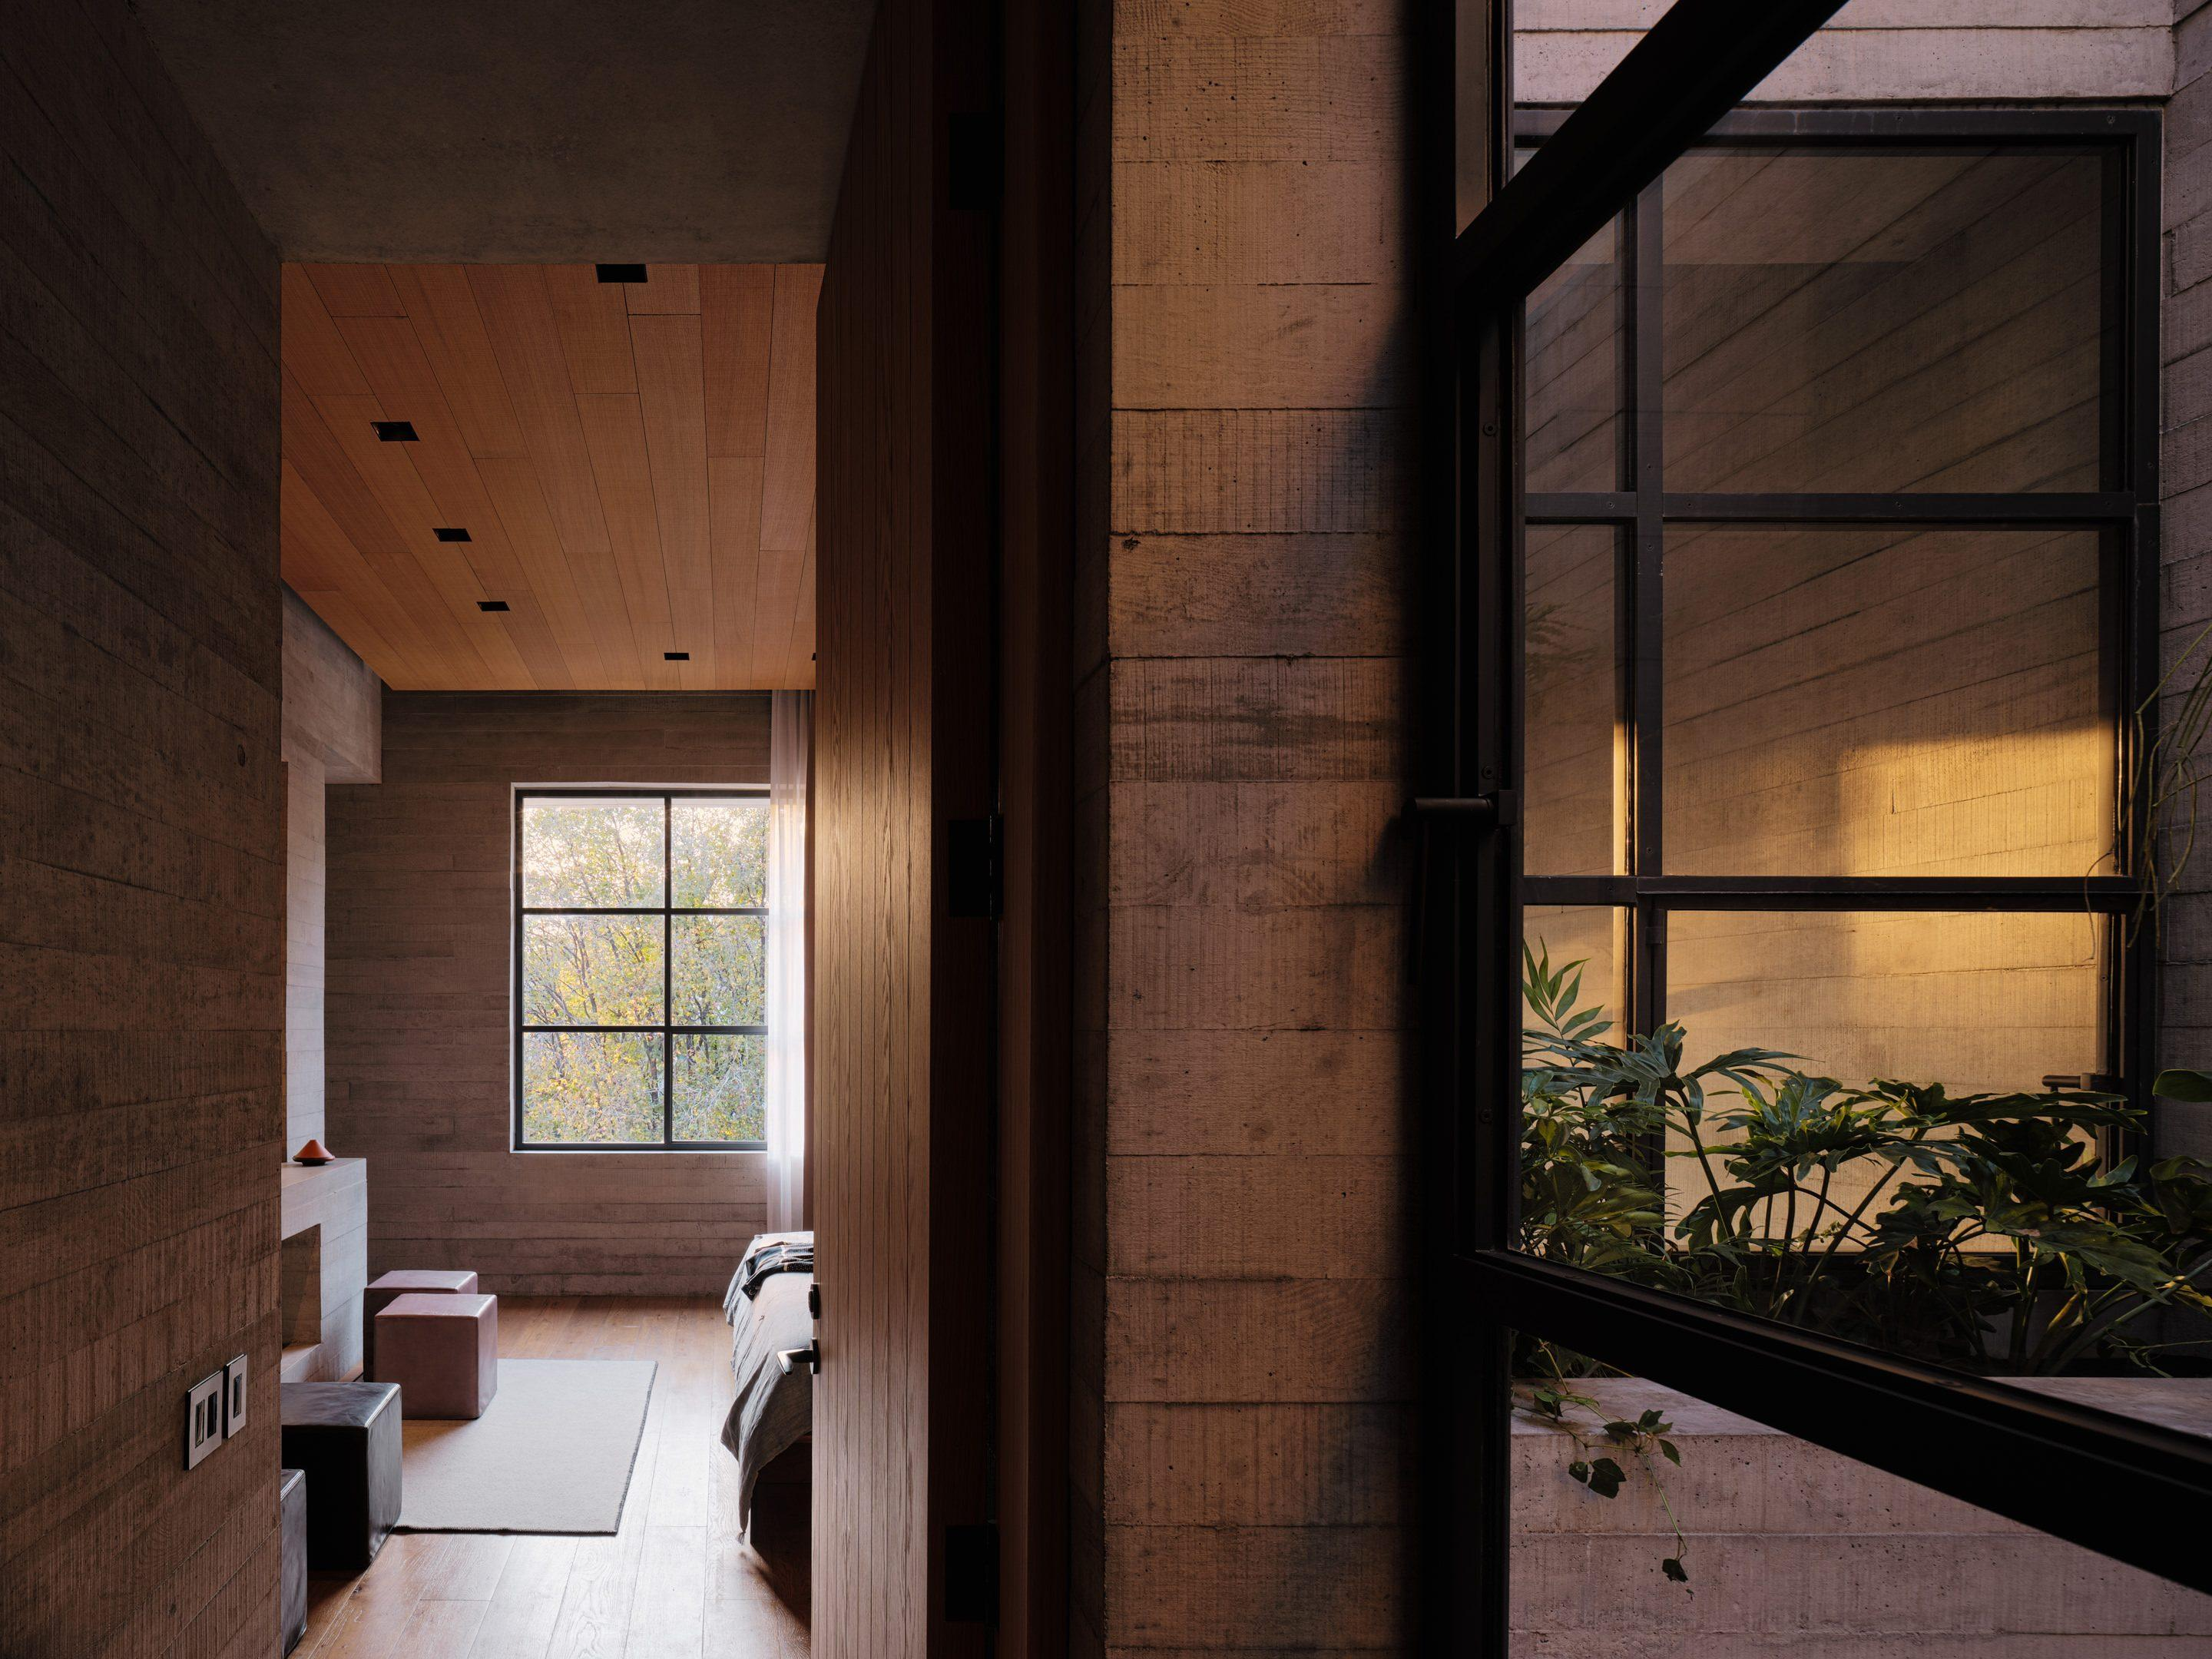 IGNANT-Architecture-StudioRickJoy-Polanco-23